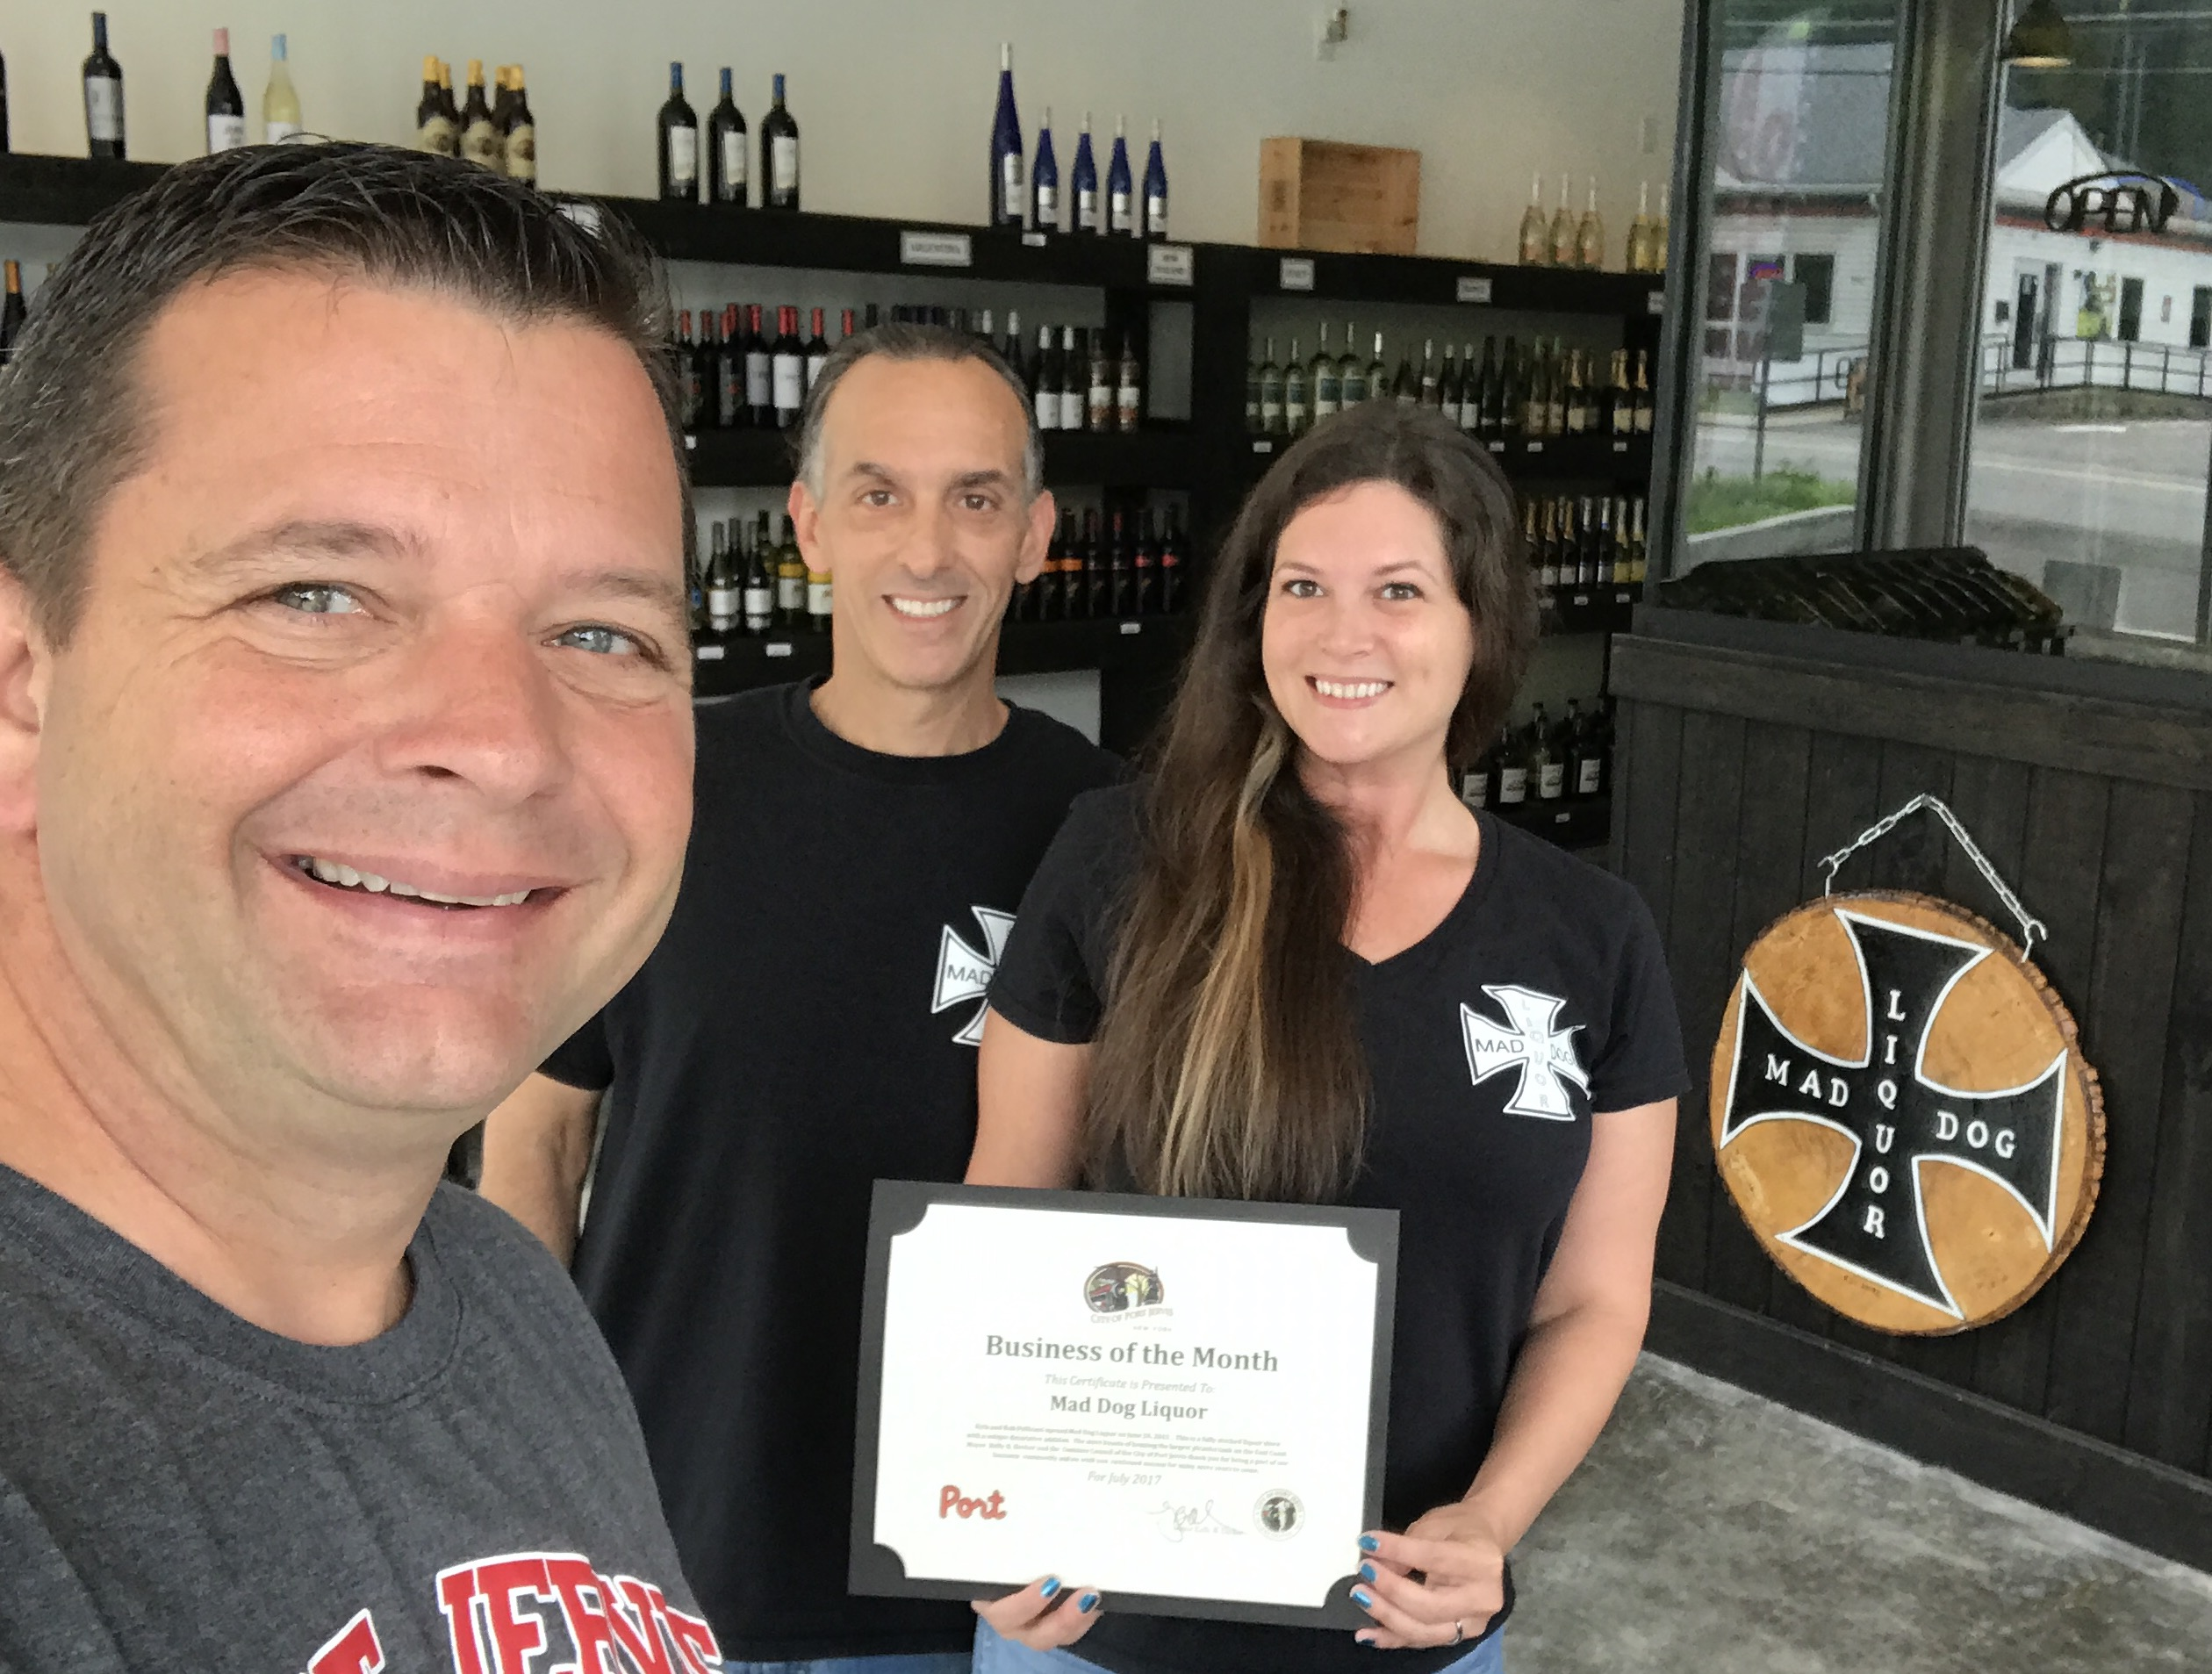 Mad Dog Liquor – 2017 July Business of the Month